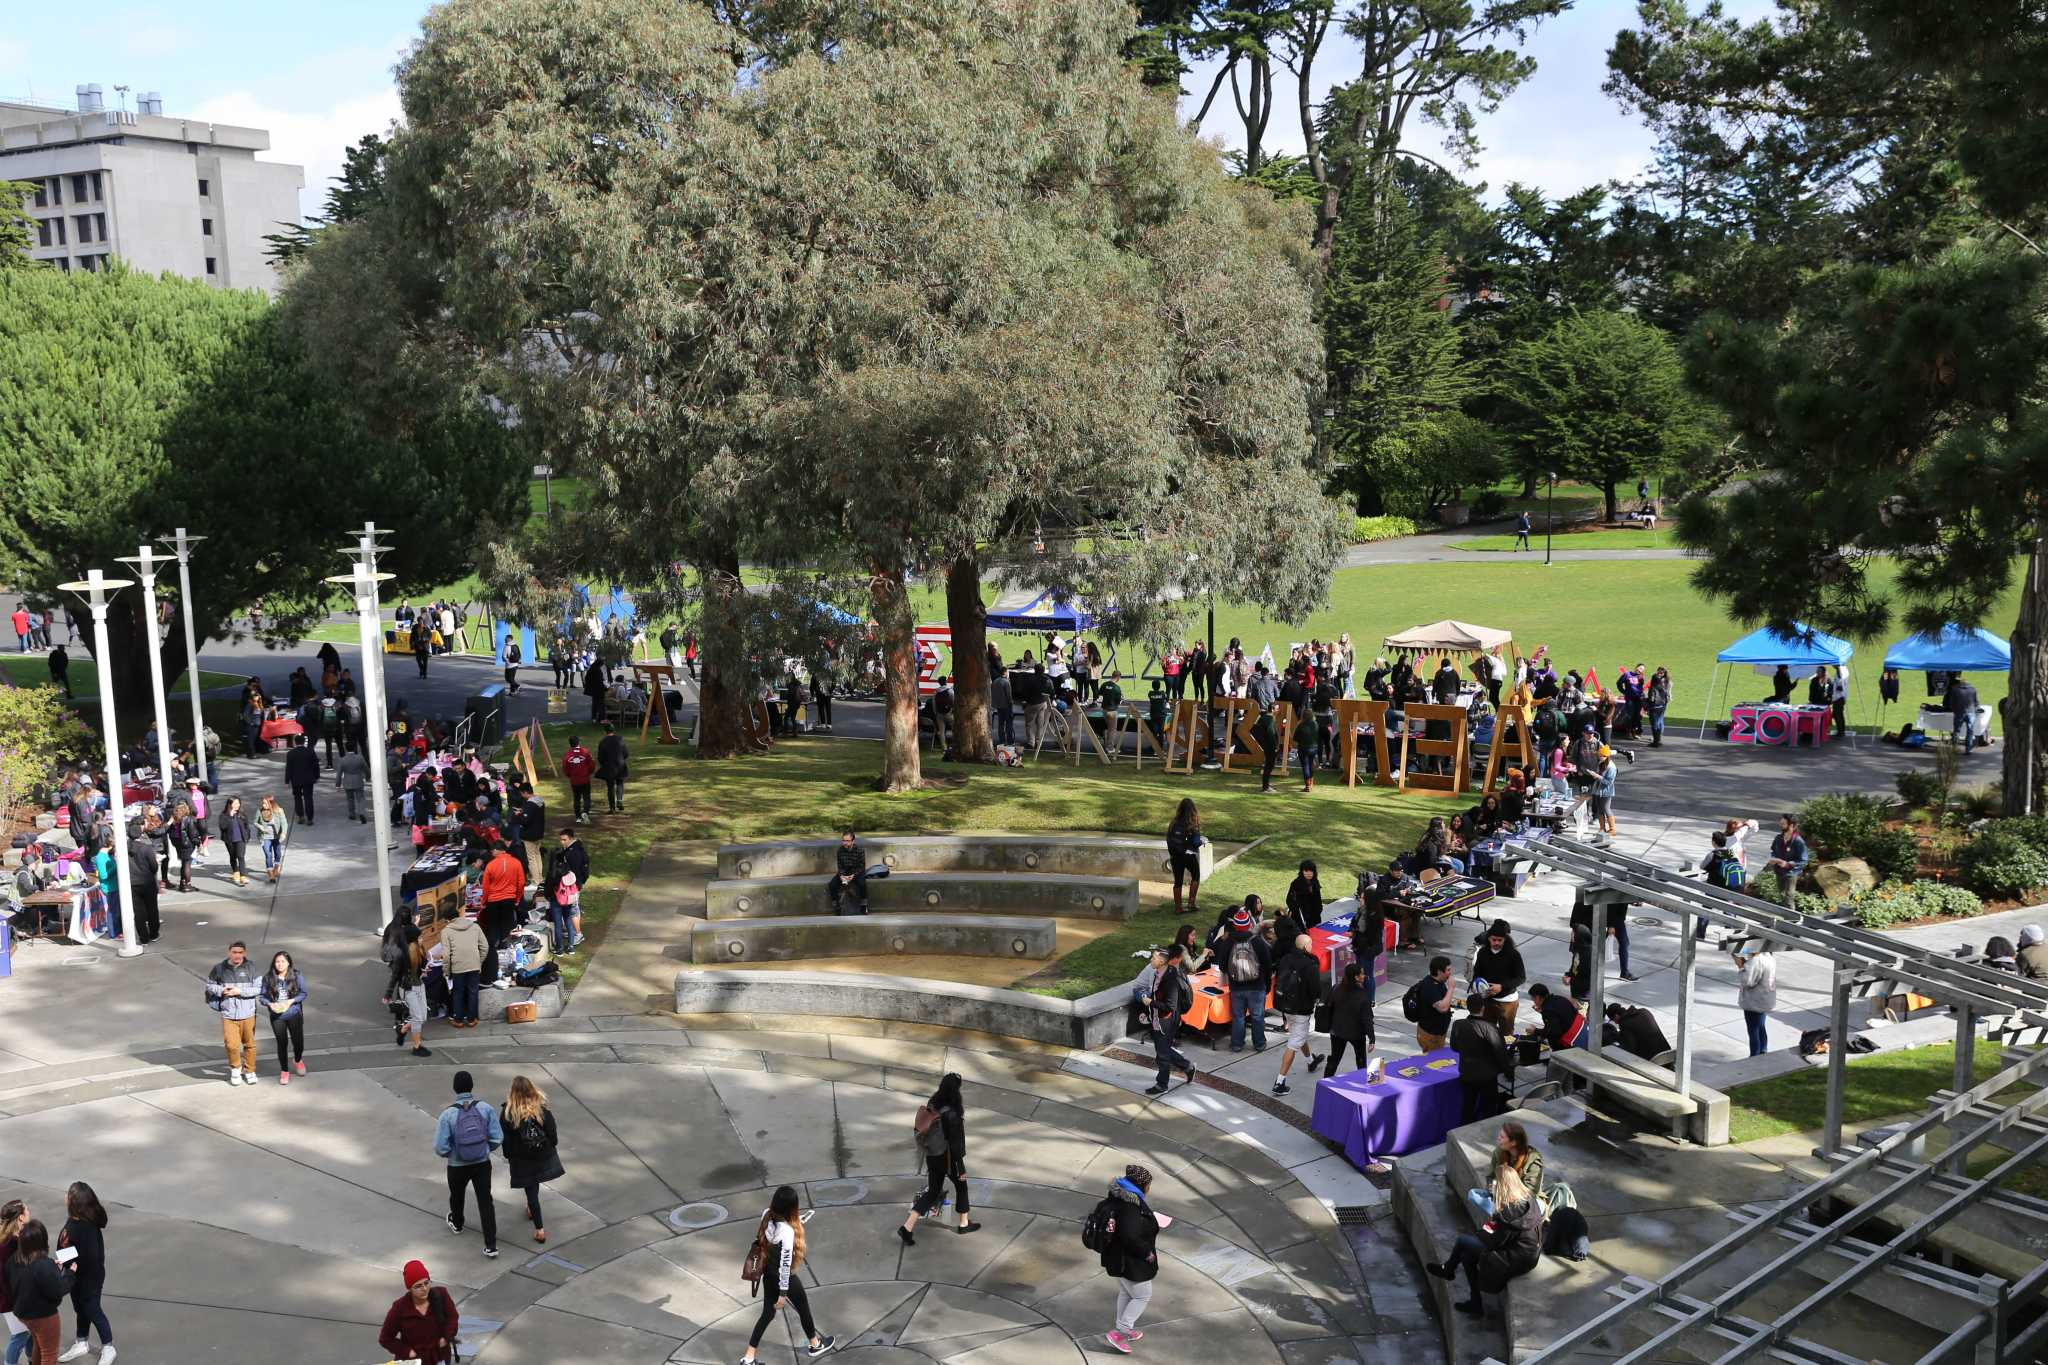 SF State organizations gather at Malcolm X Plaza to recruit potential members at SF State on Tuesday Feb. 2, 2016. (Aleah Fajardo/Xpress)